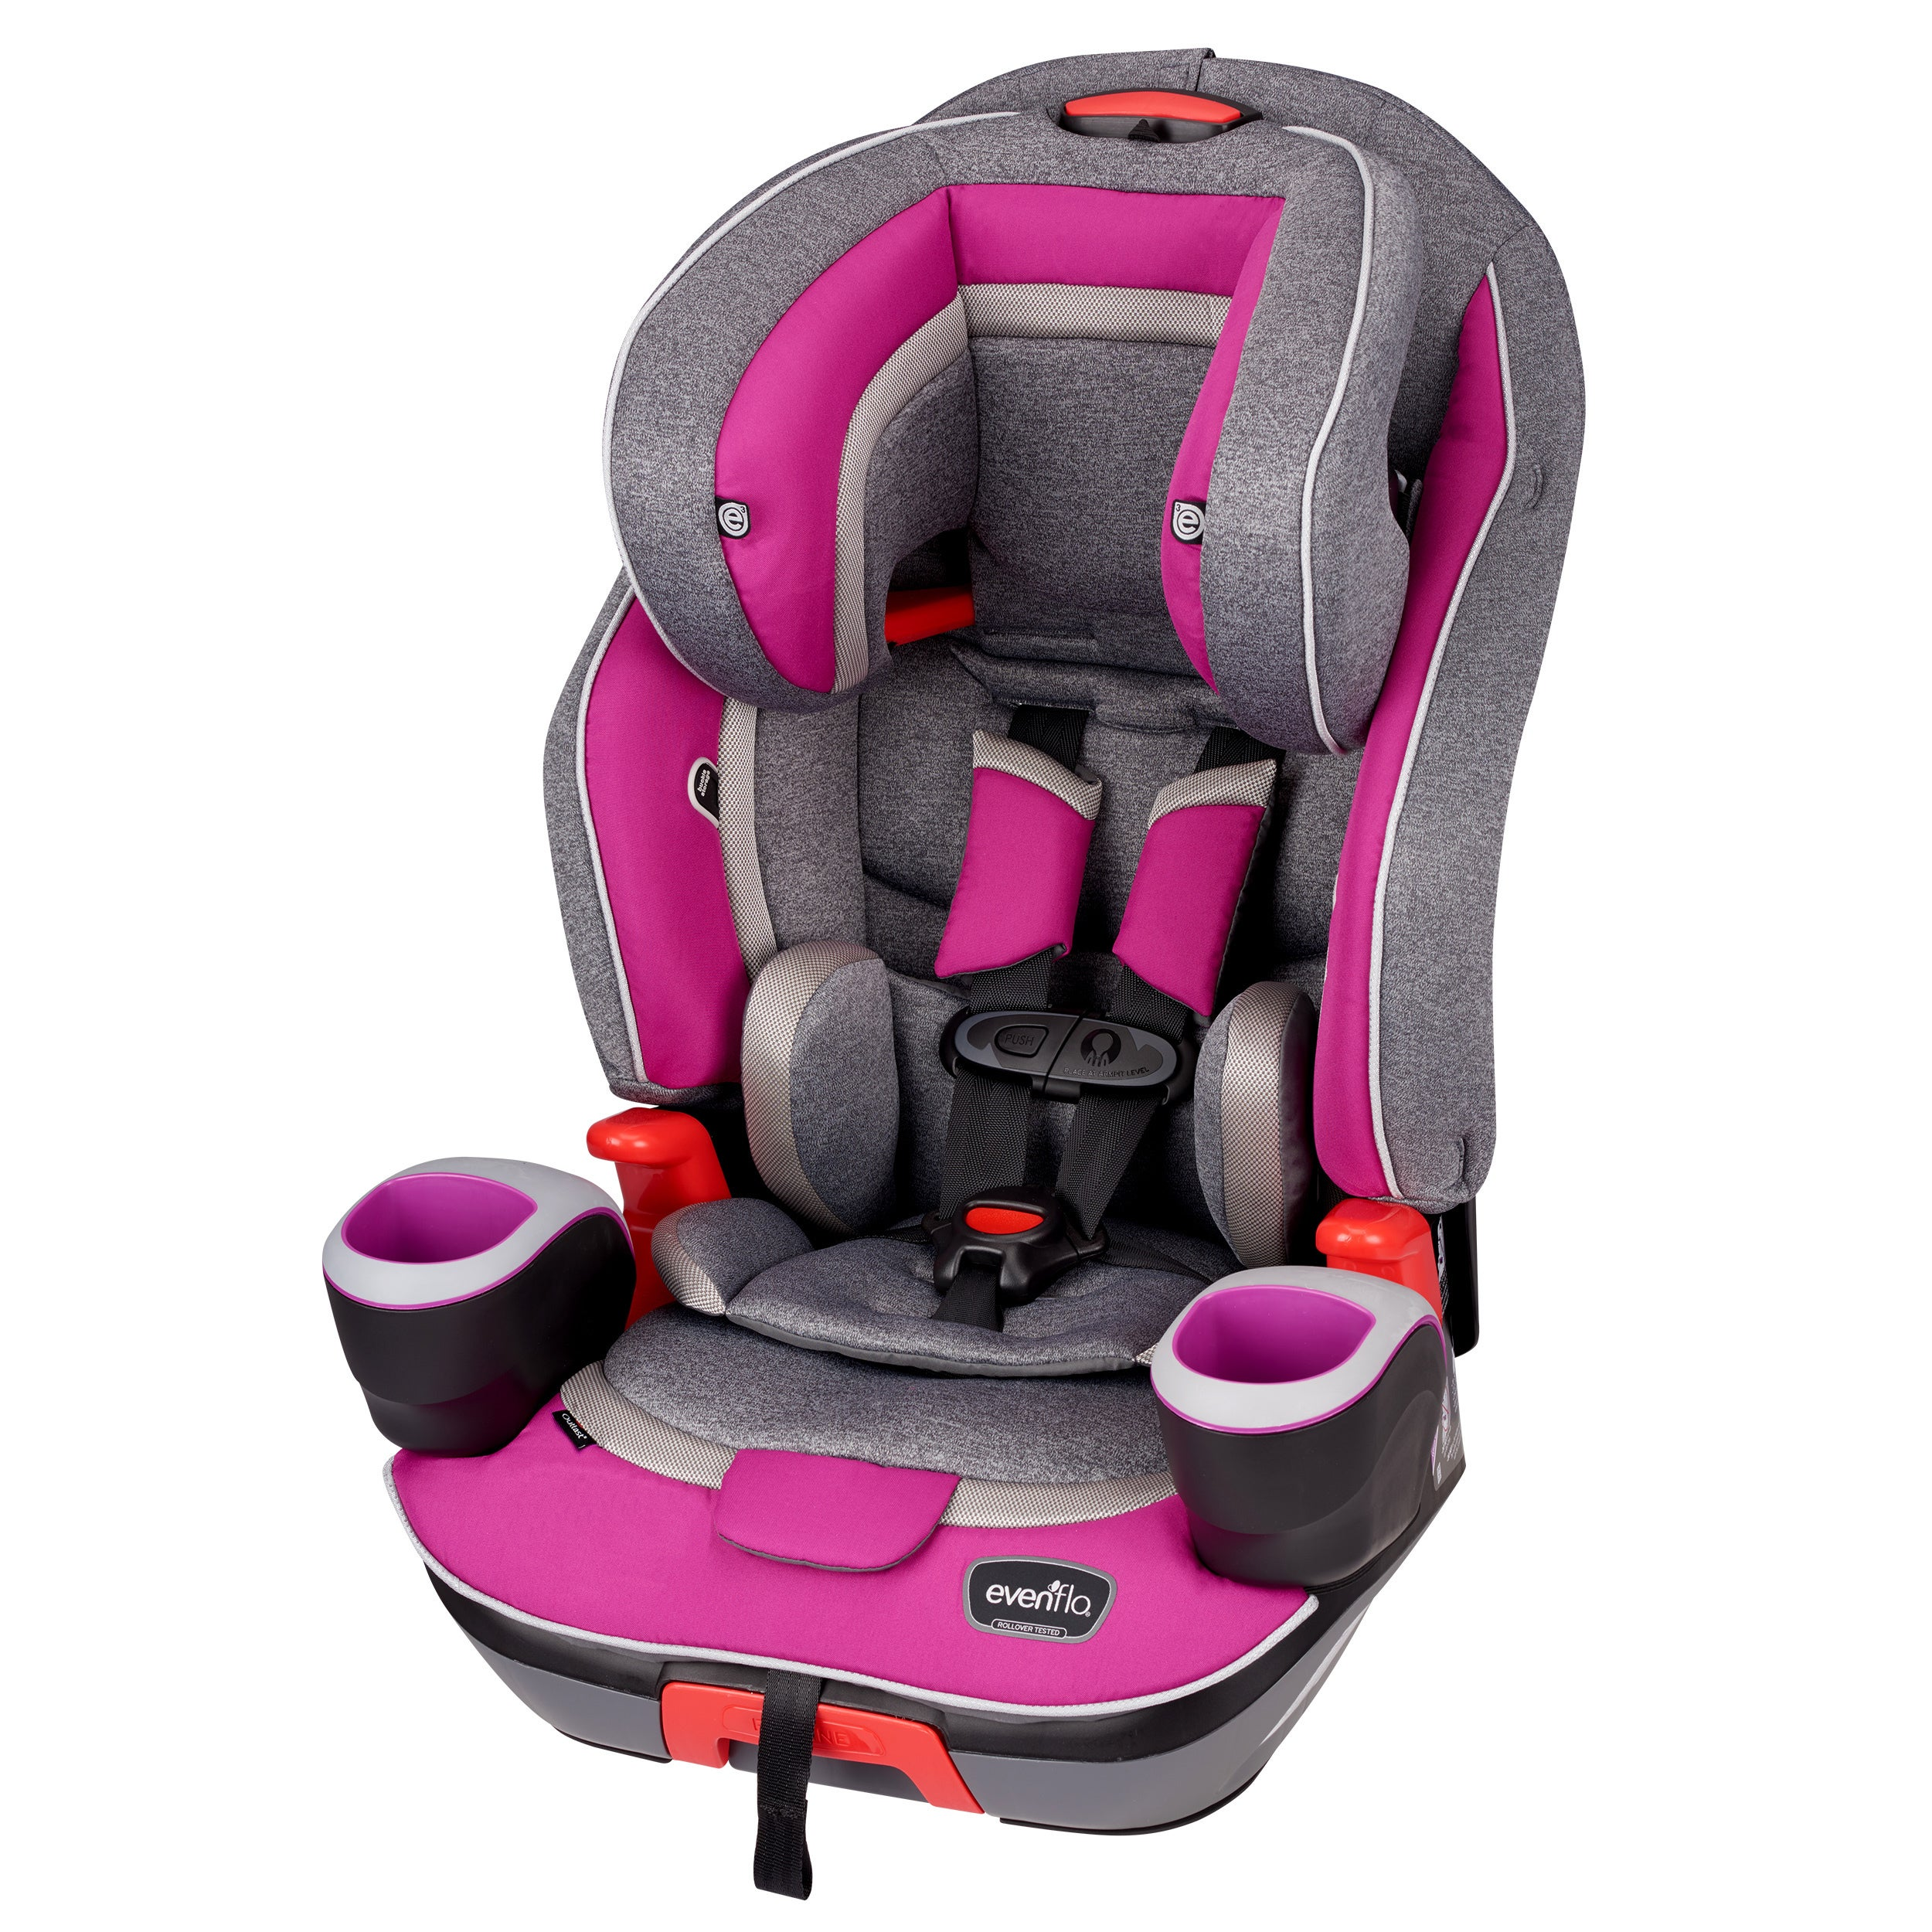 Shop Evenflo Evolve 3 In 1 Combination Booster Car Seat Dreamer